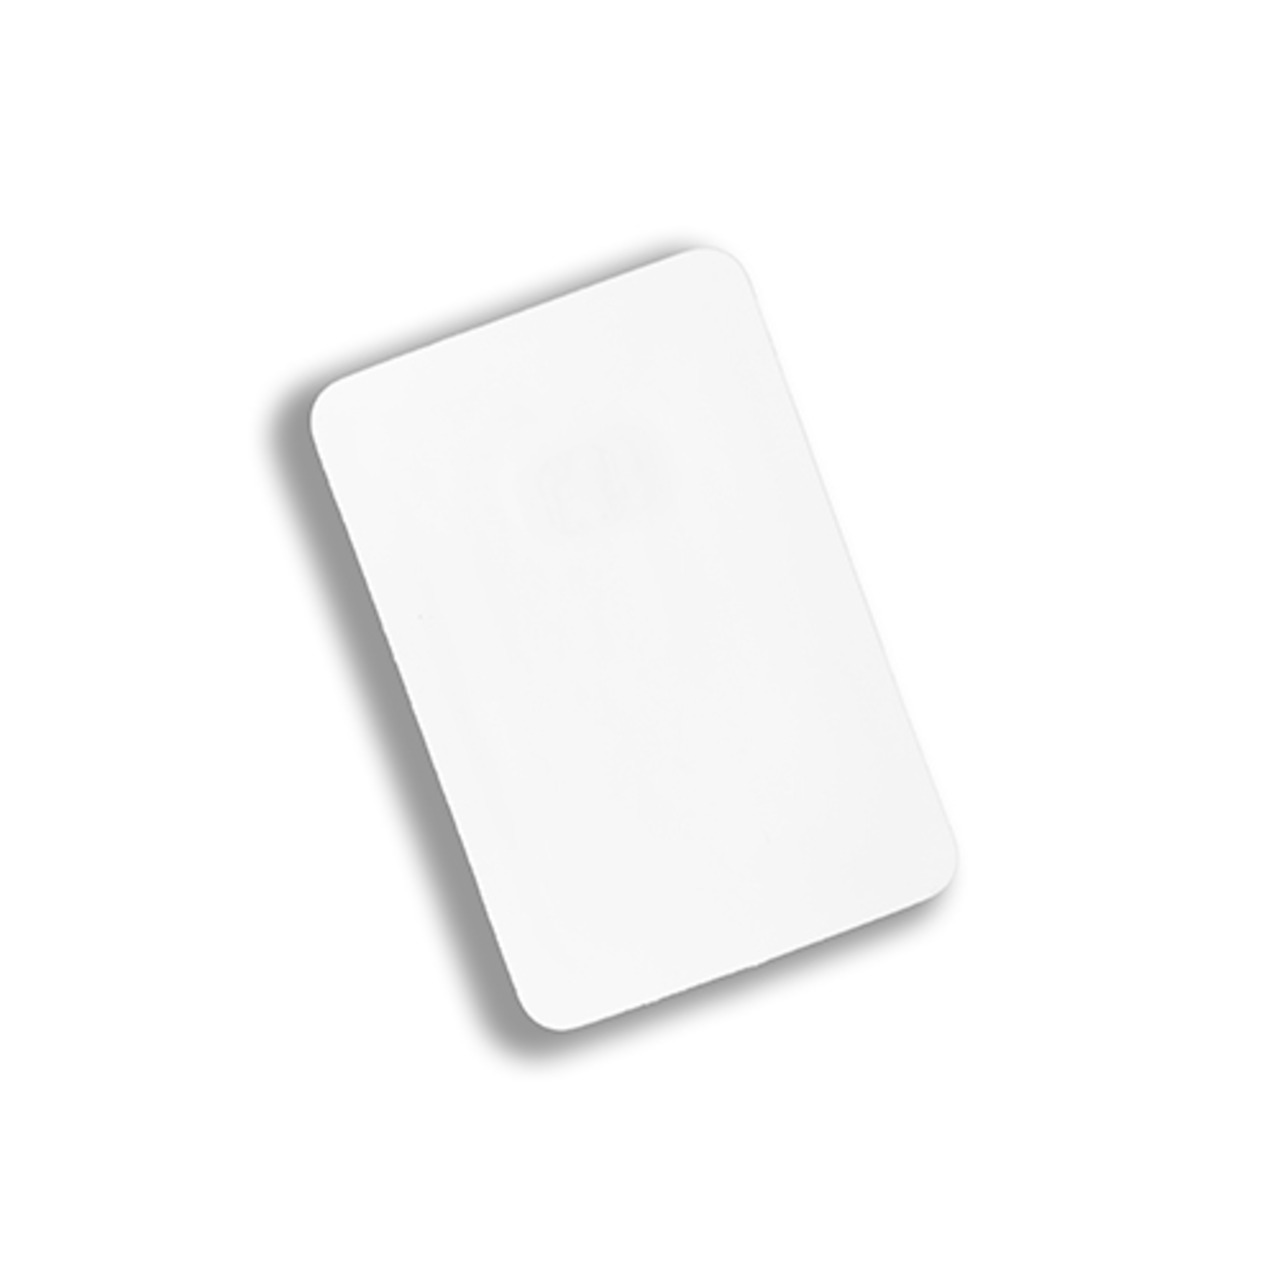 Tamper Proof NFC Tags